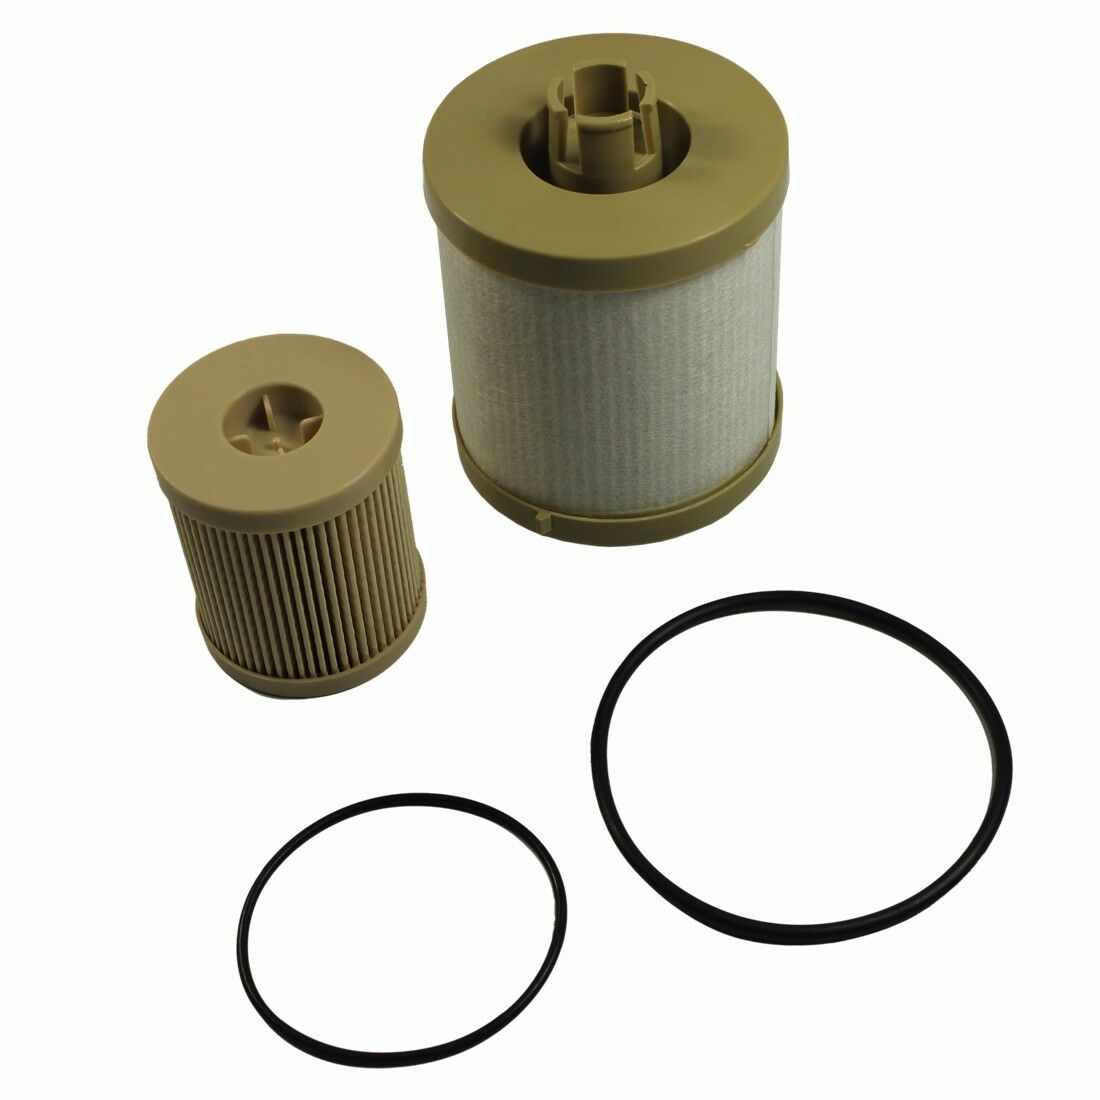 New Fuel Filter Fd4616 Fd4604 For Ford Diesel 60 F450 F250 F350 6 0 Updated Powerstroke 1 Of 9free Shipping